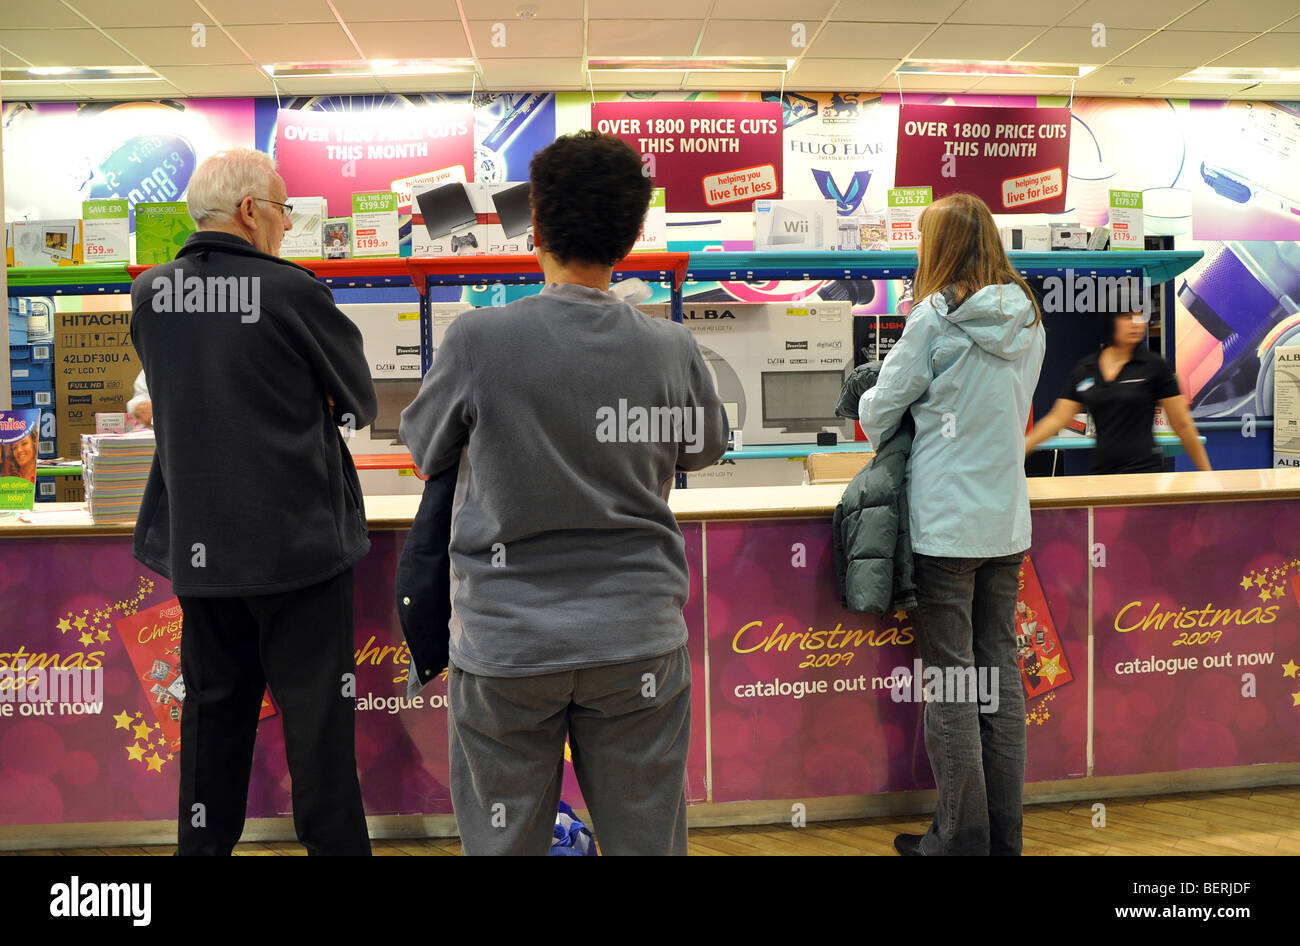 Christmas shoppers waiting for items at the Argos store - Stock Image